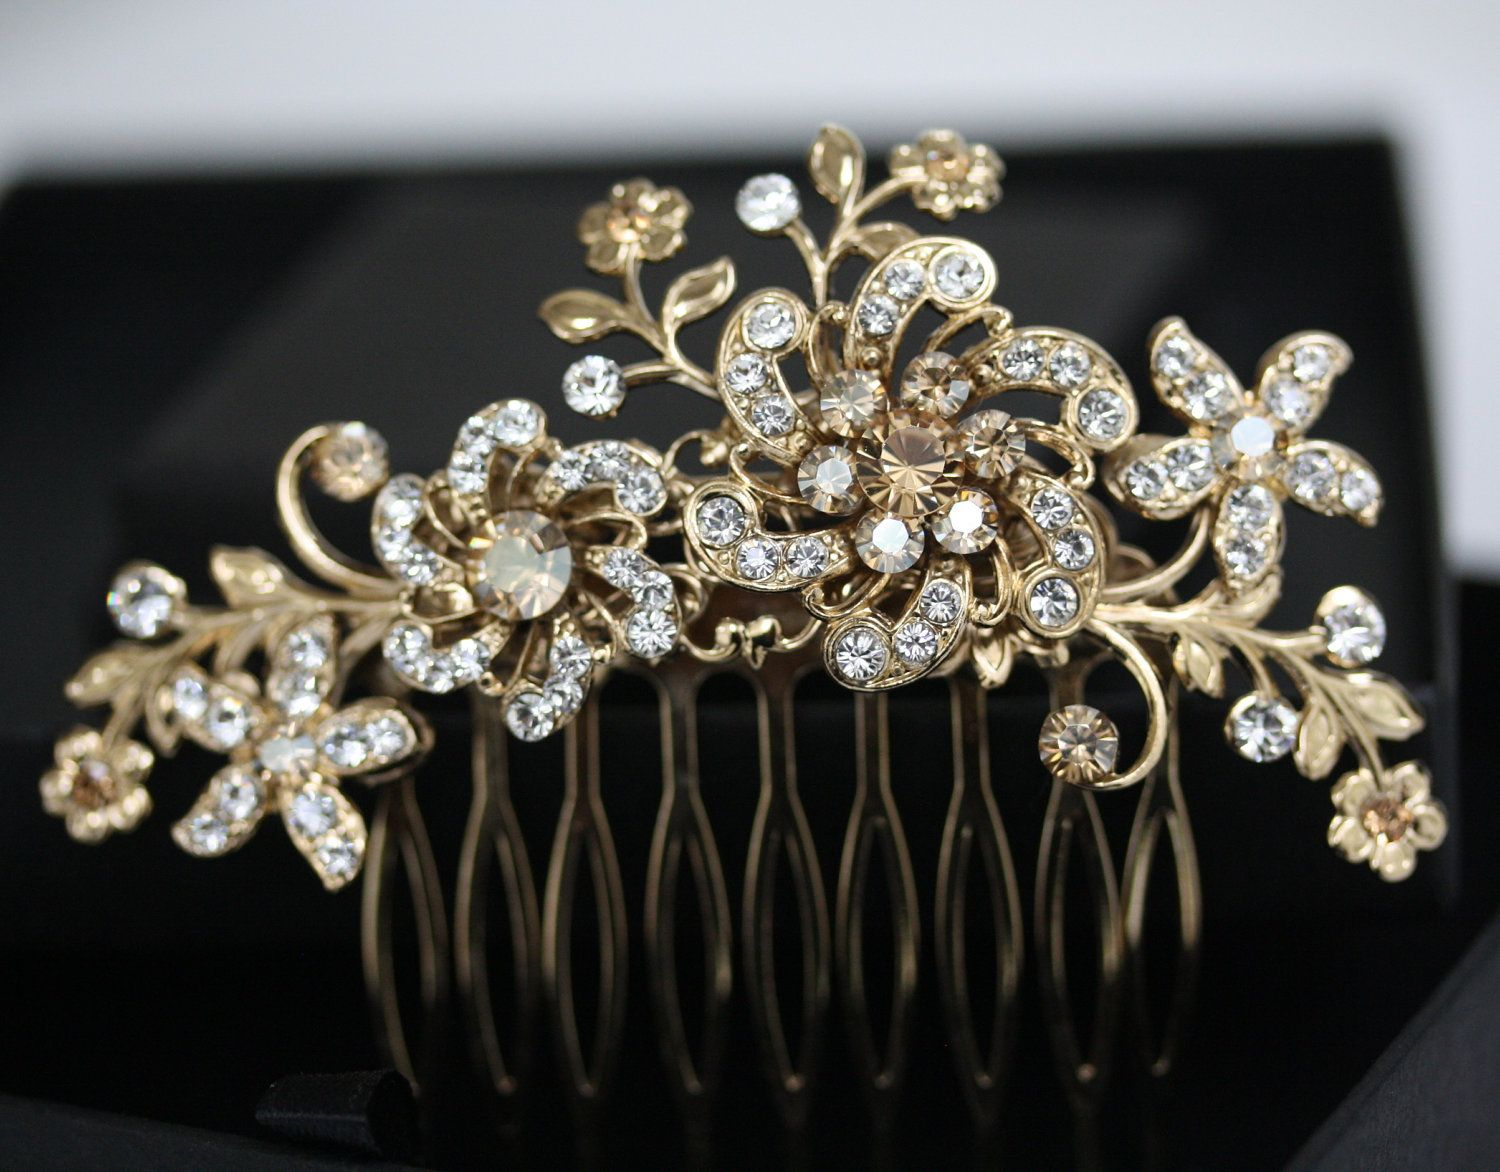 Wondrous Bridal Headpiece Gold Wedding Hair Accessories Golden Shadow Hairstyle Inspiration Daily Dogsangcom